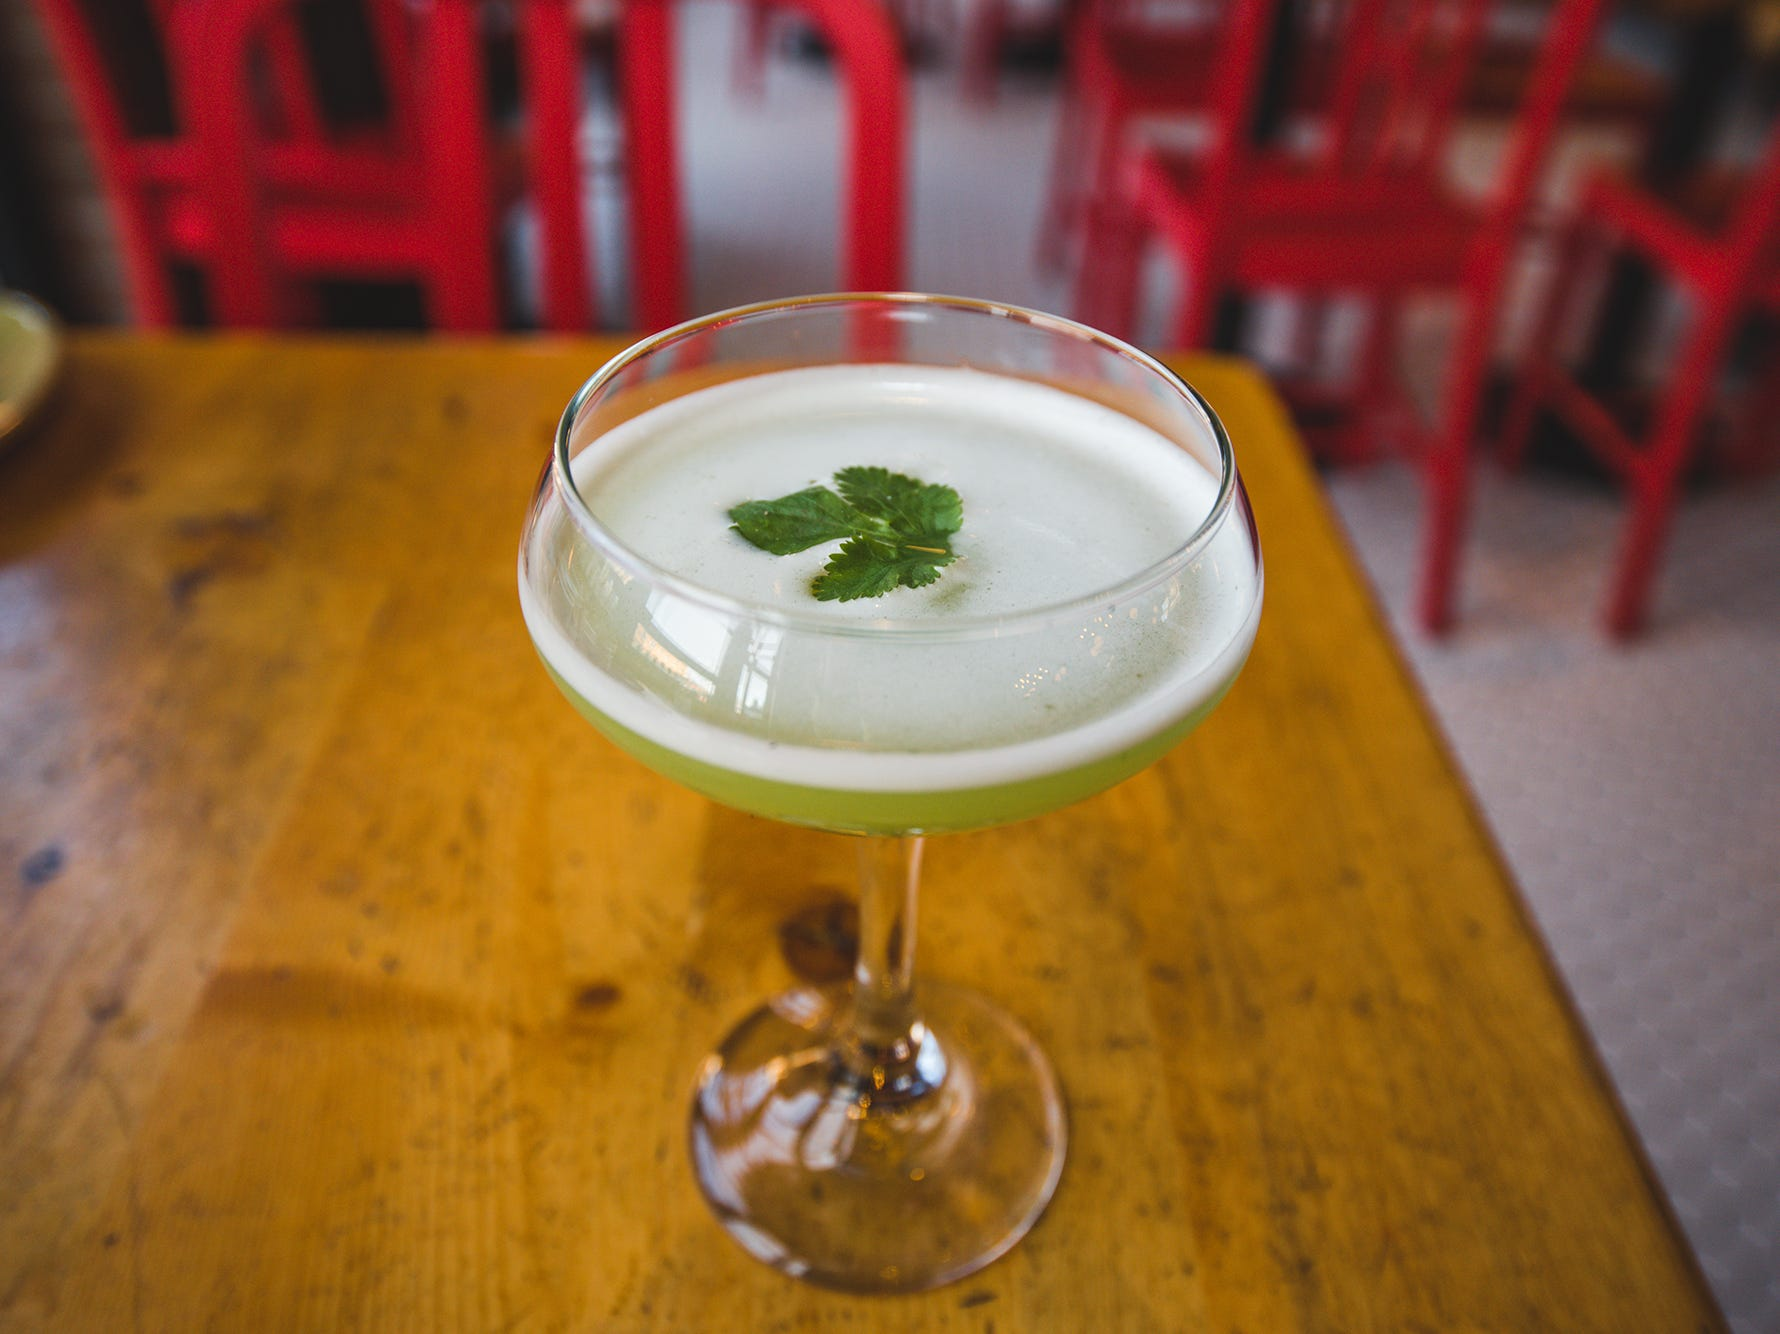 The Cilantro Fizz at Punch Bowl Social locations across the U.S. It's crafted from fresh cilantro, house-made jalapeño and cucumber syrup, fresh lime juice and aquafaba.